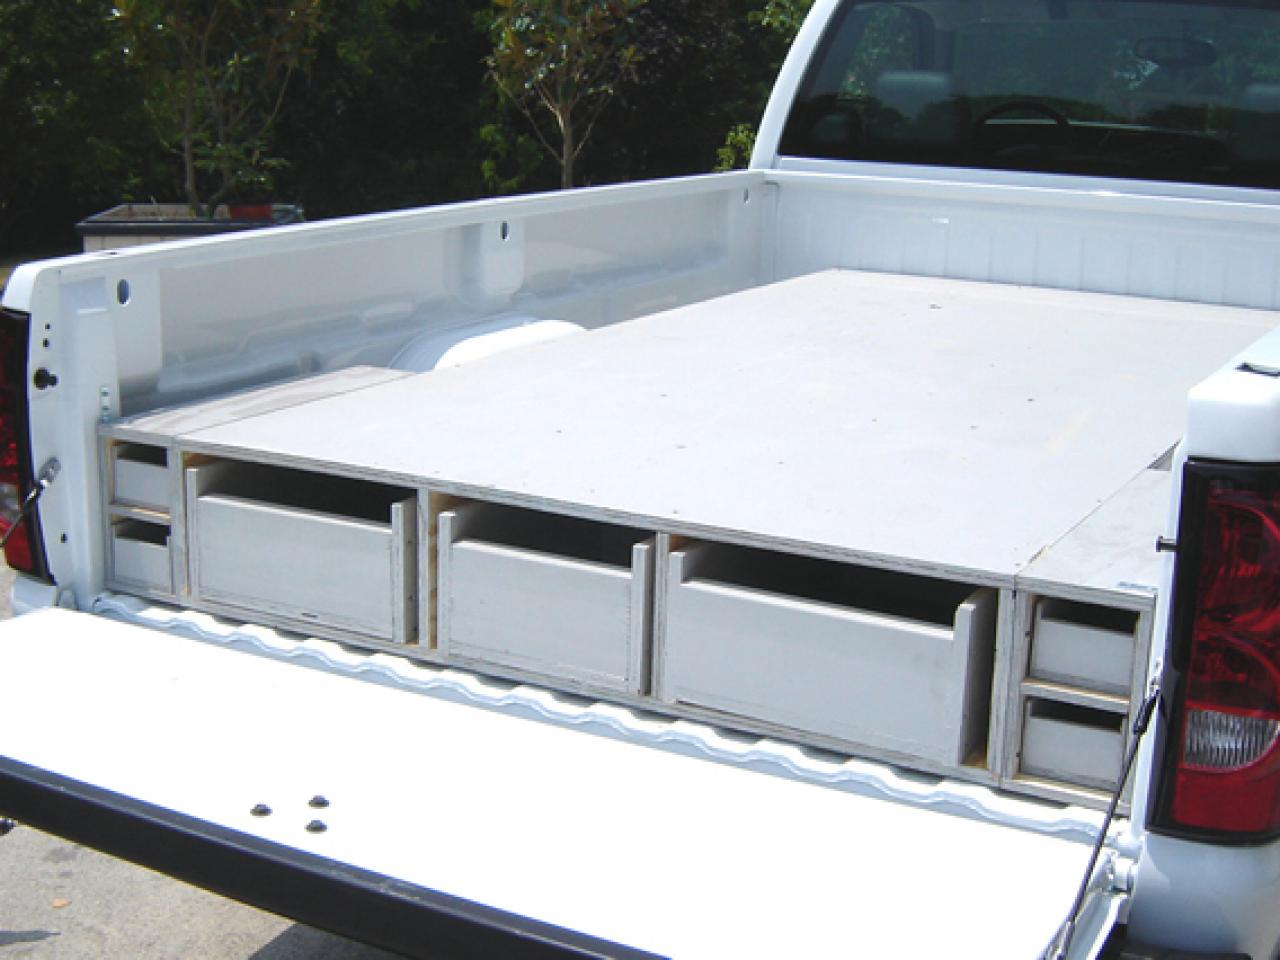 Picture of: Truck Bed Storage Rack